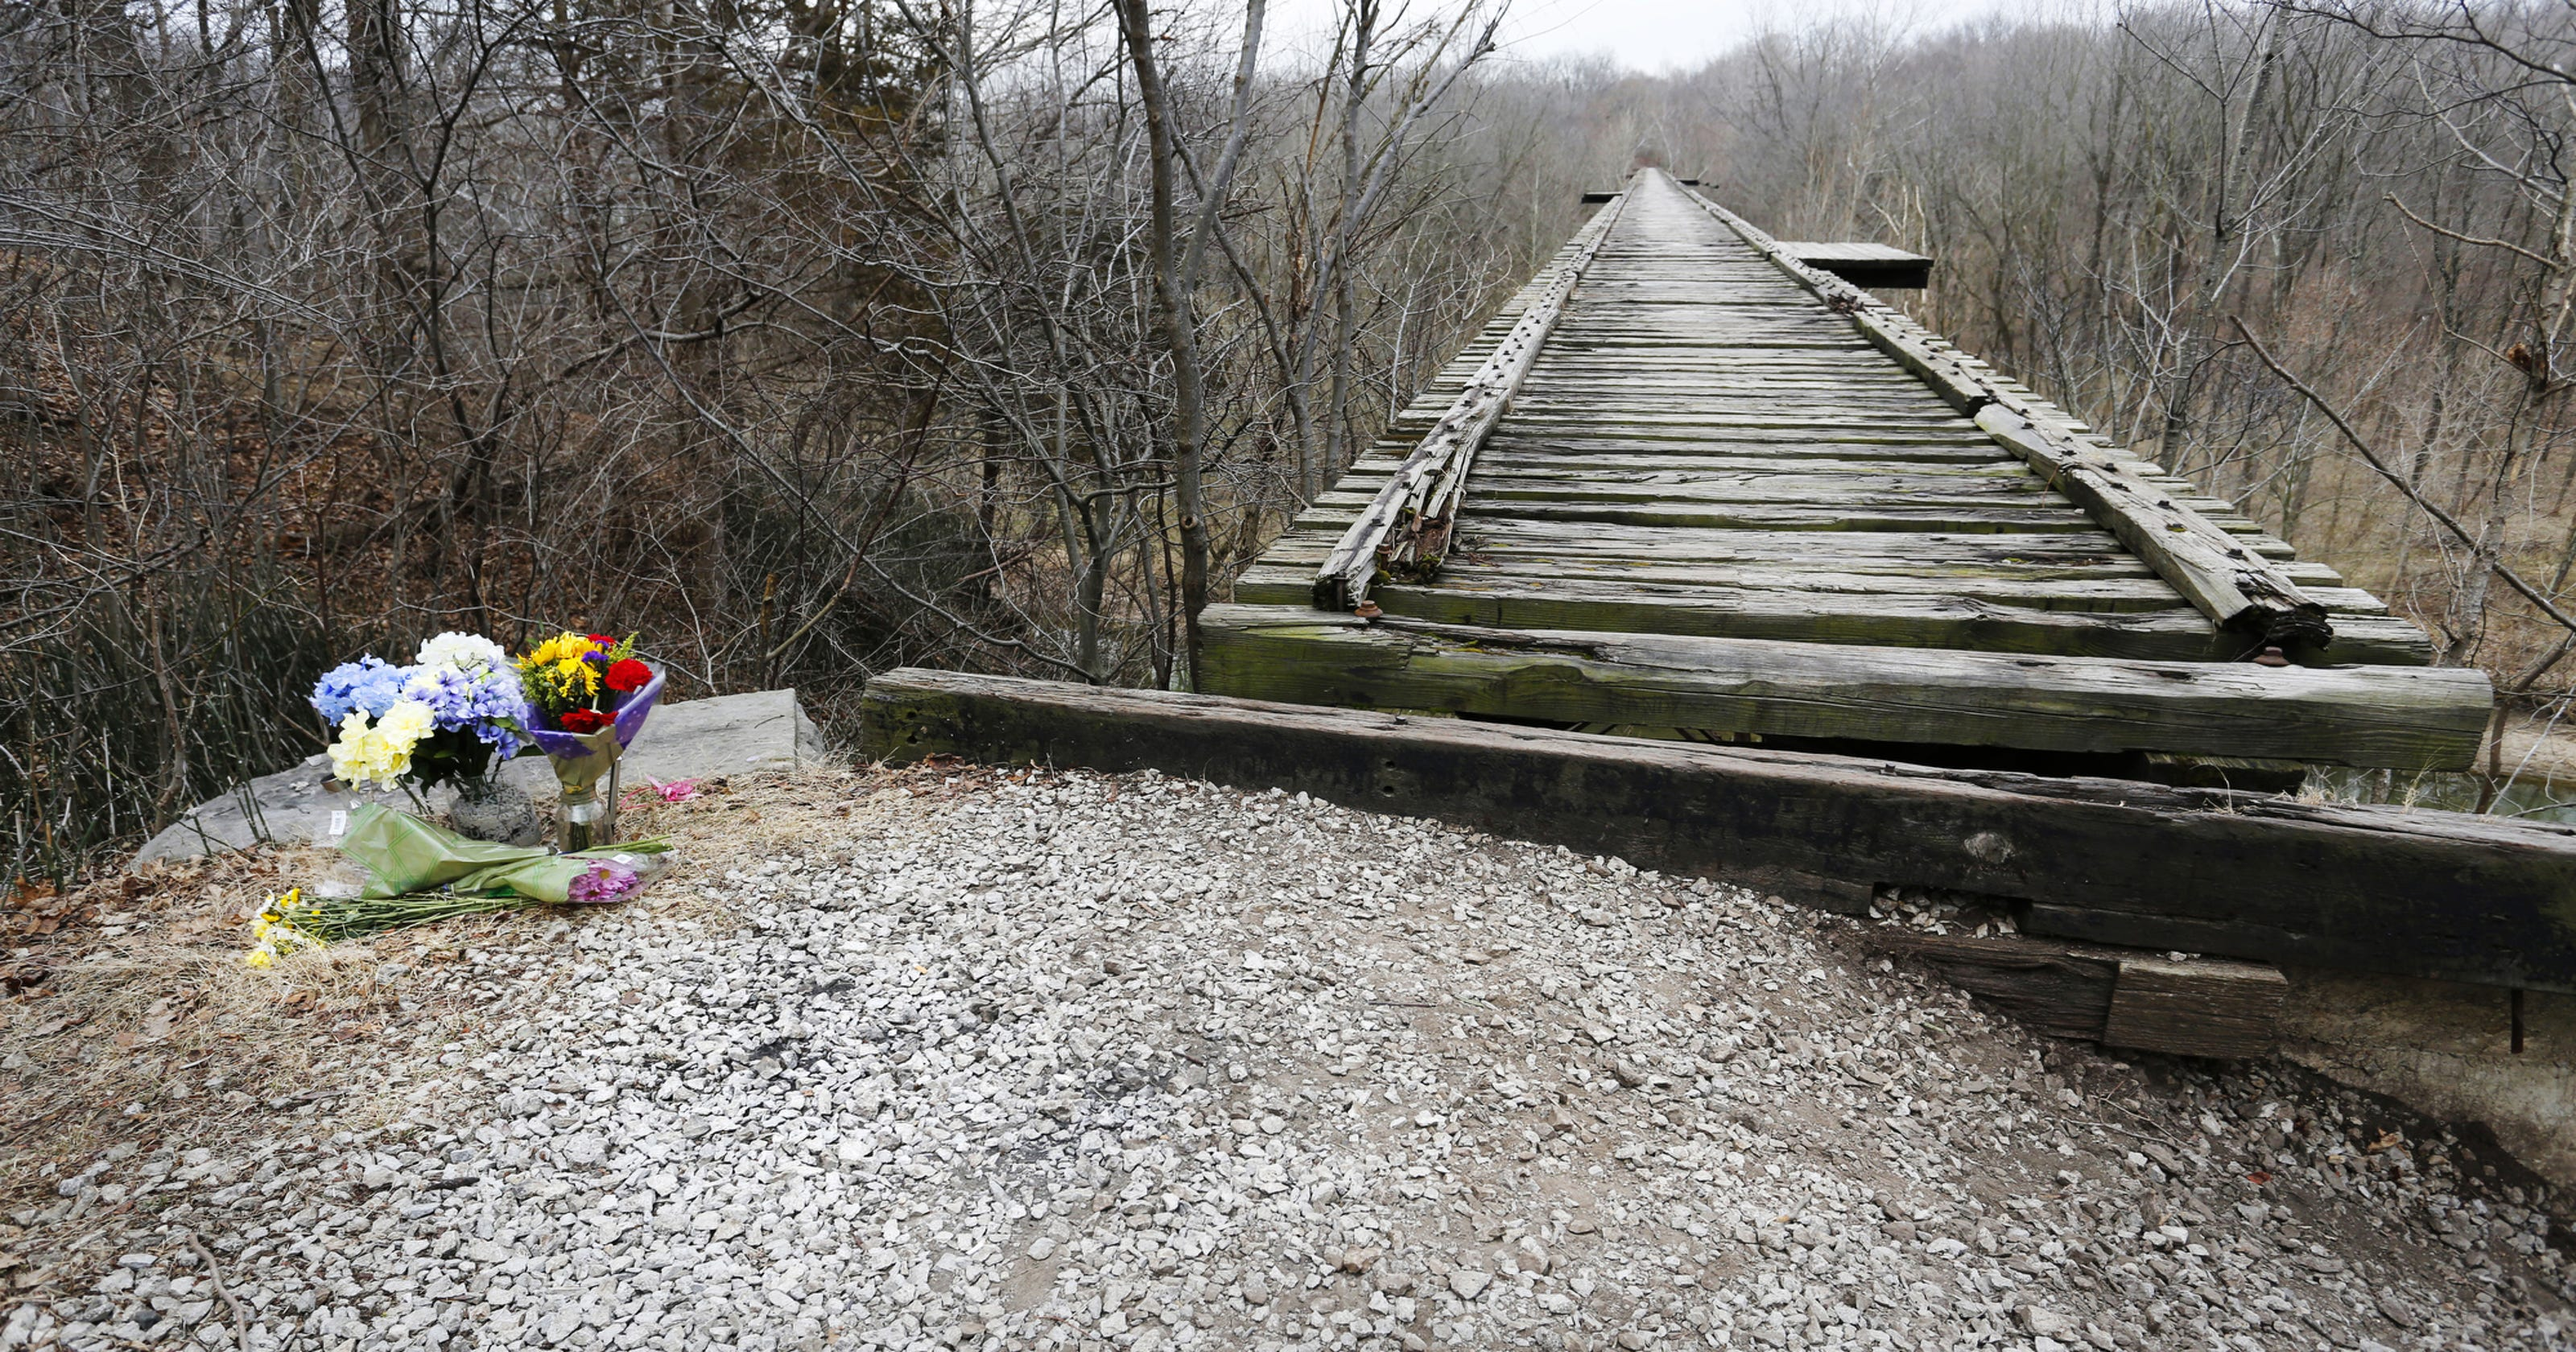 Delphi murders: $1 2M to restore Monon High Bridge trail